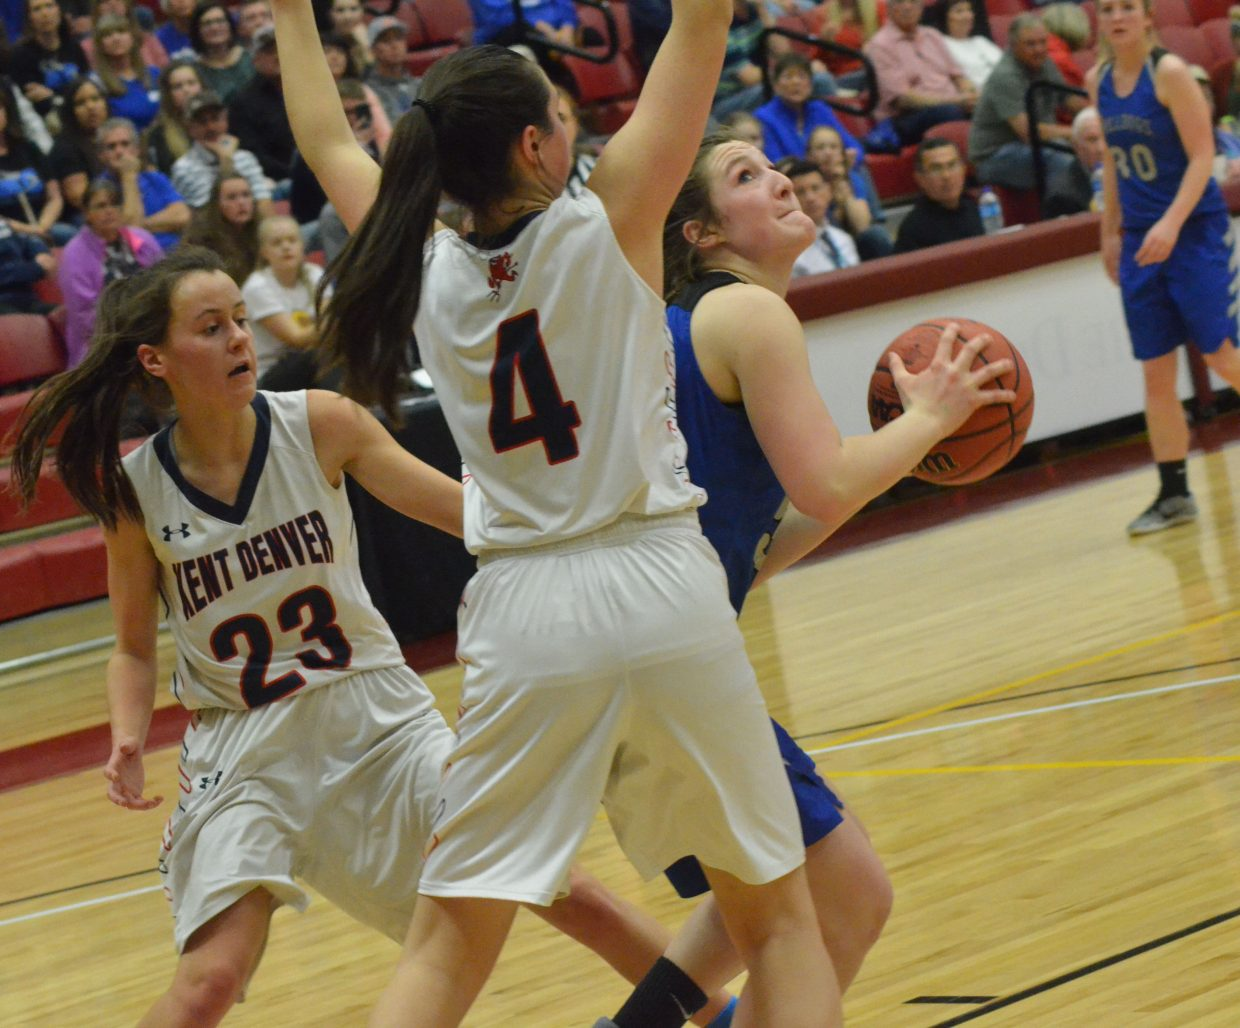 Moffat County High School's Tiffany Hildebrandt whips around to put up a shot against Kent Denver.